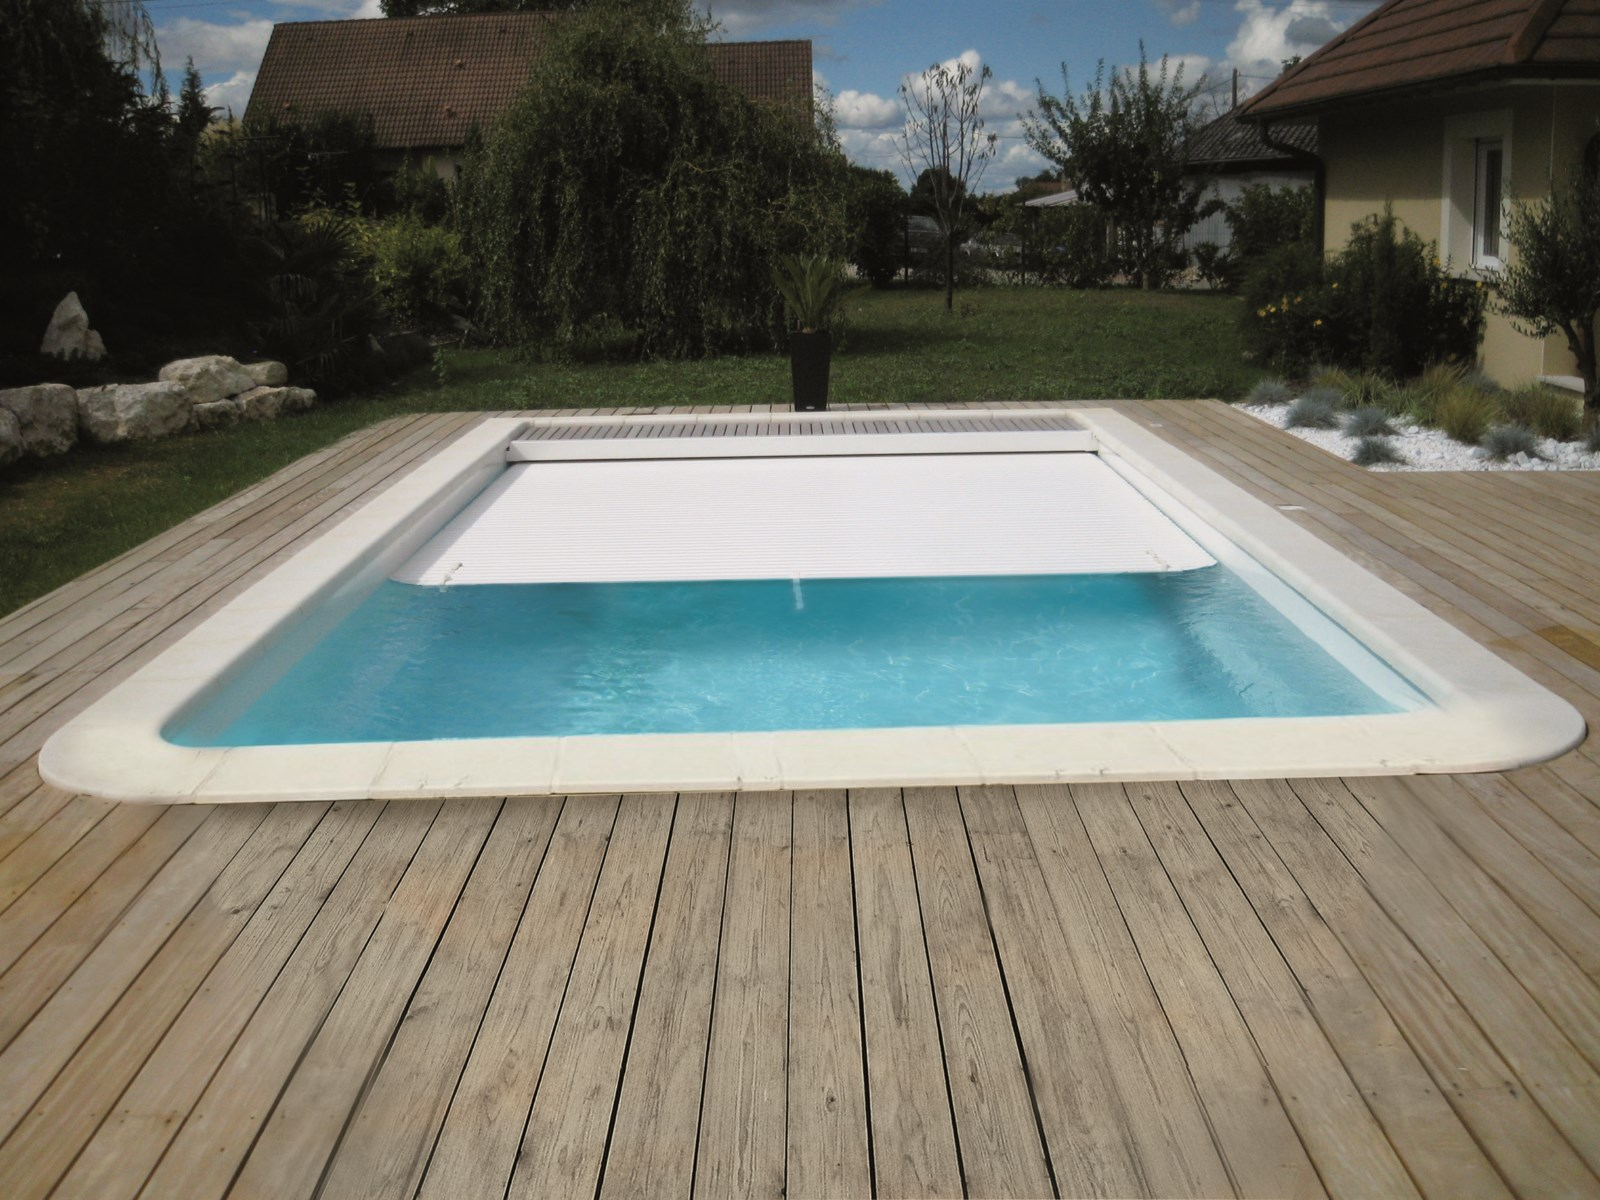 Piscine coque polyester rectangulaire mod le born o avec for Piscine a coque